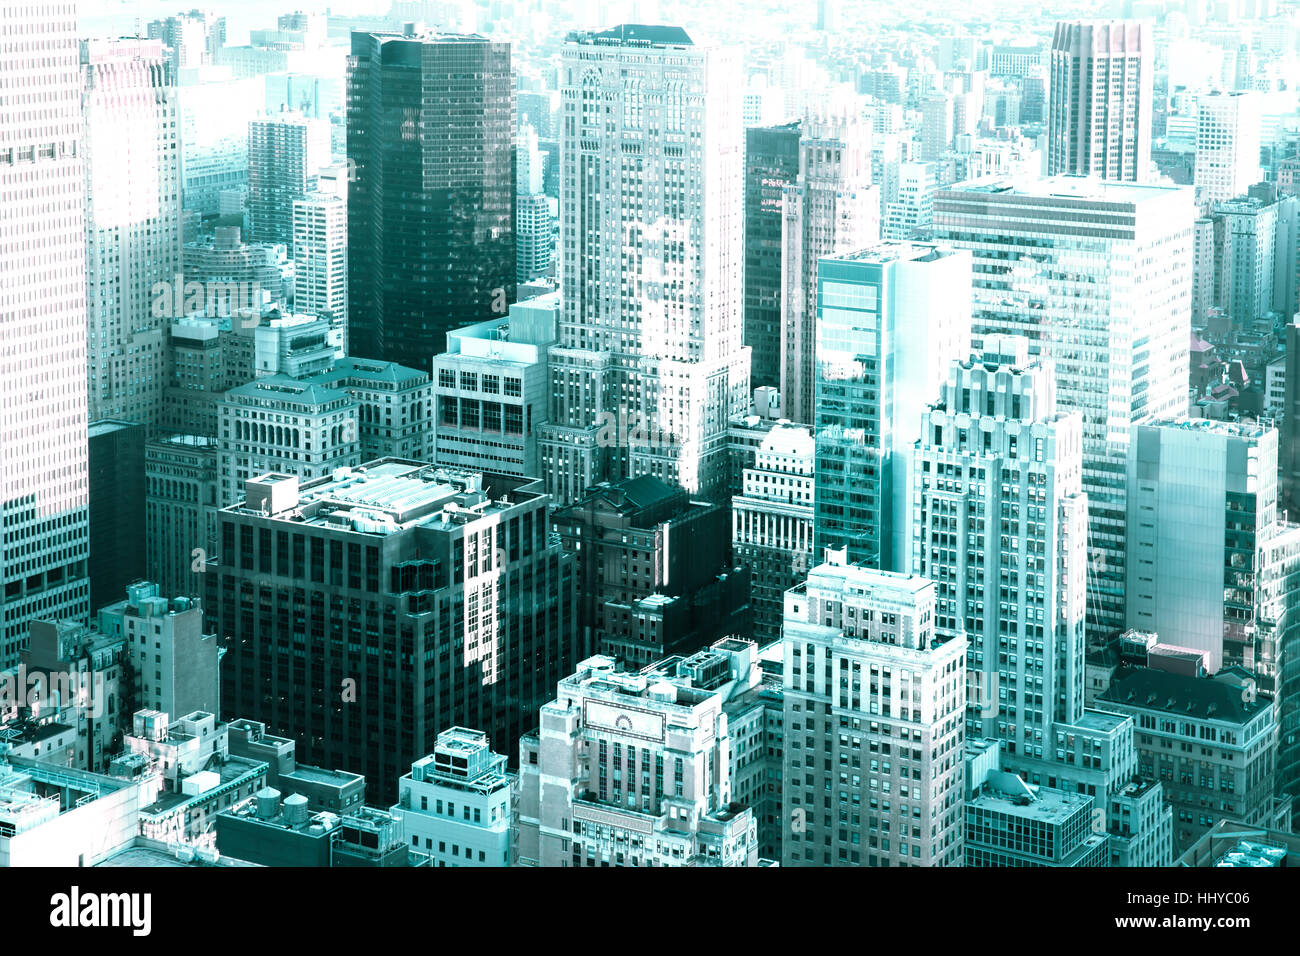 View of many buildings and skyscraper across New York City with modern tone - Stock Image